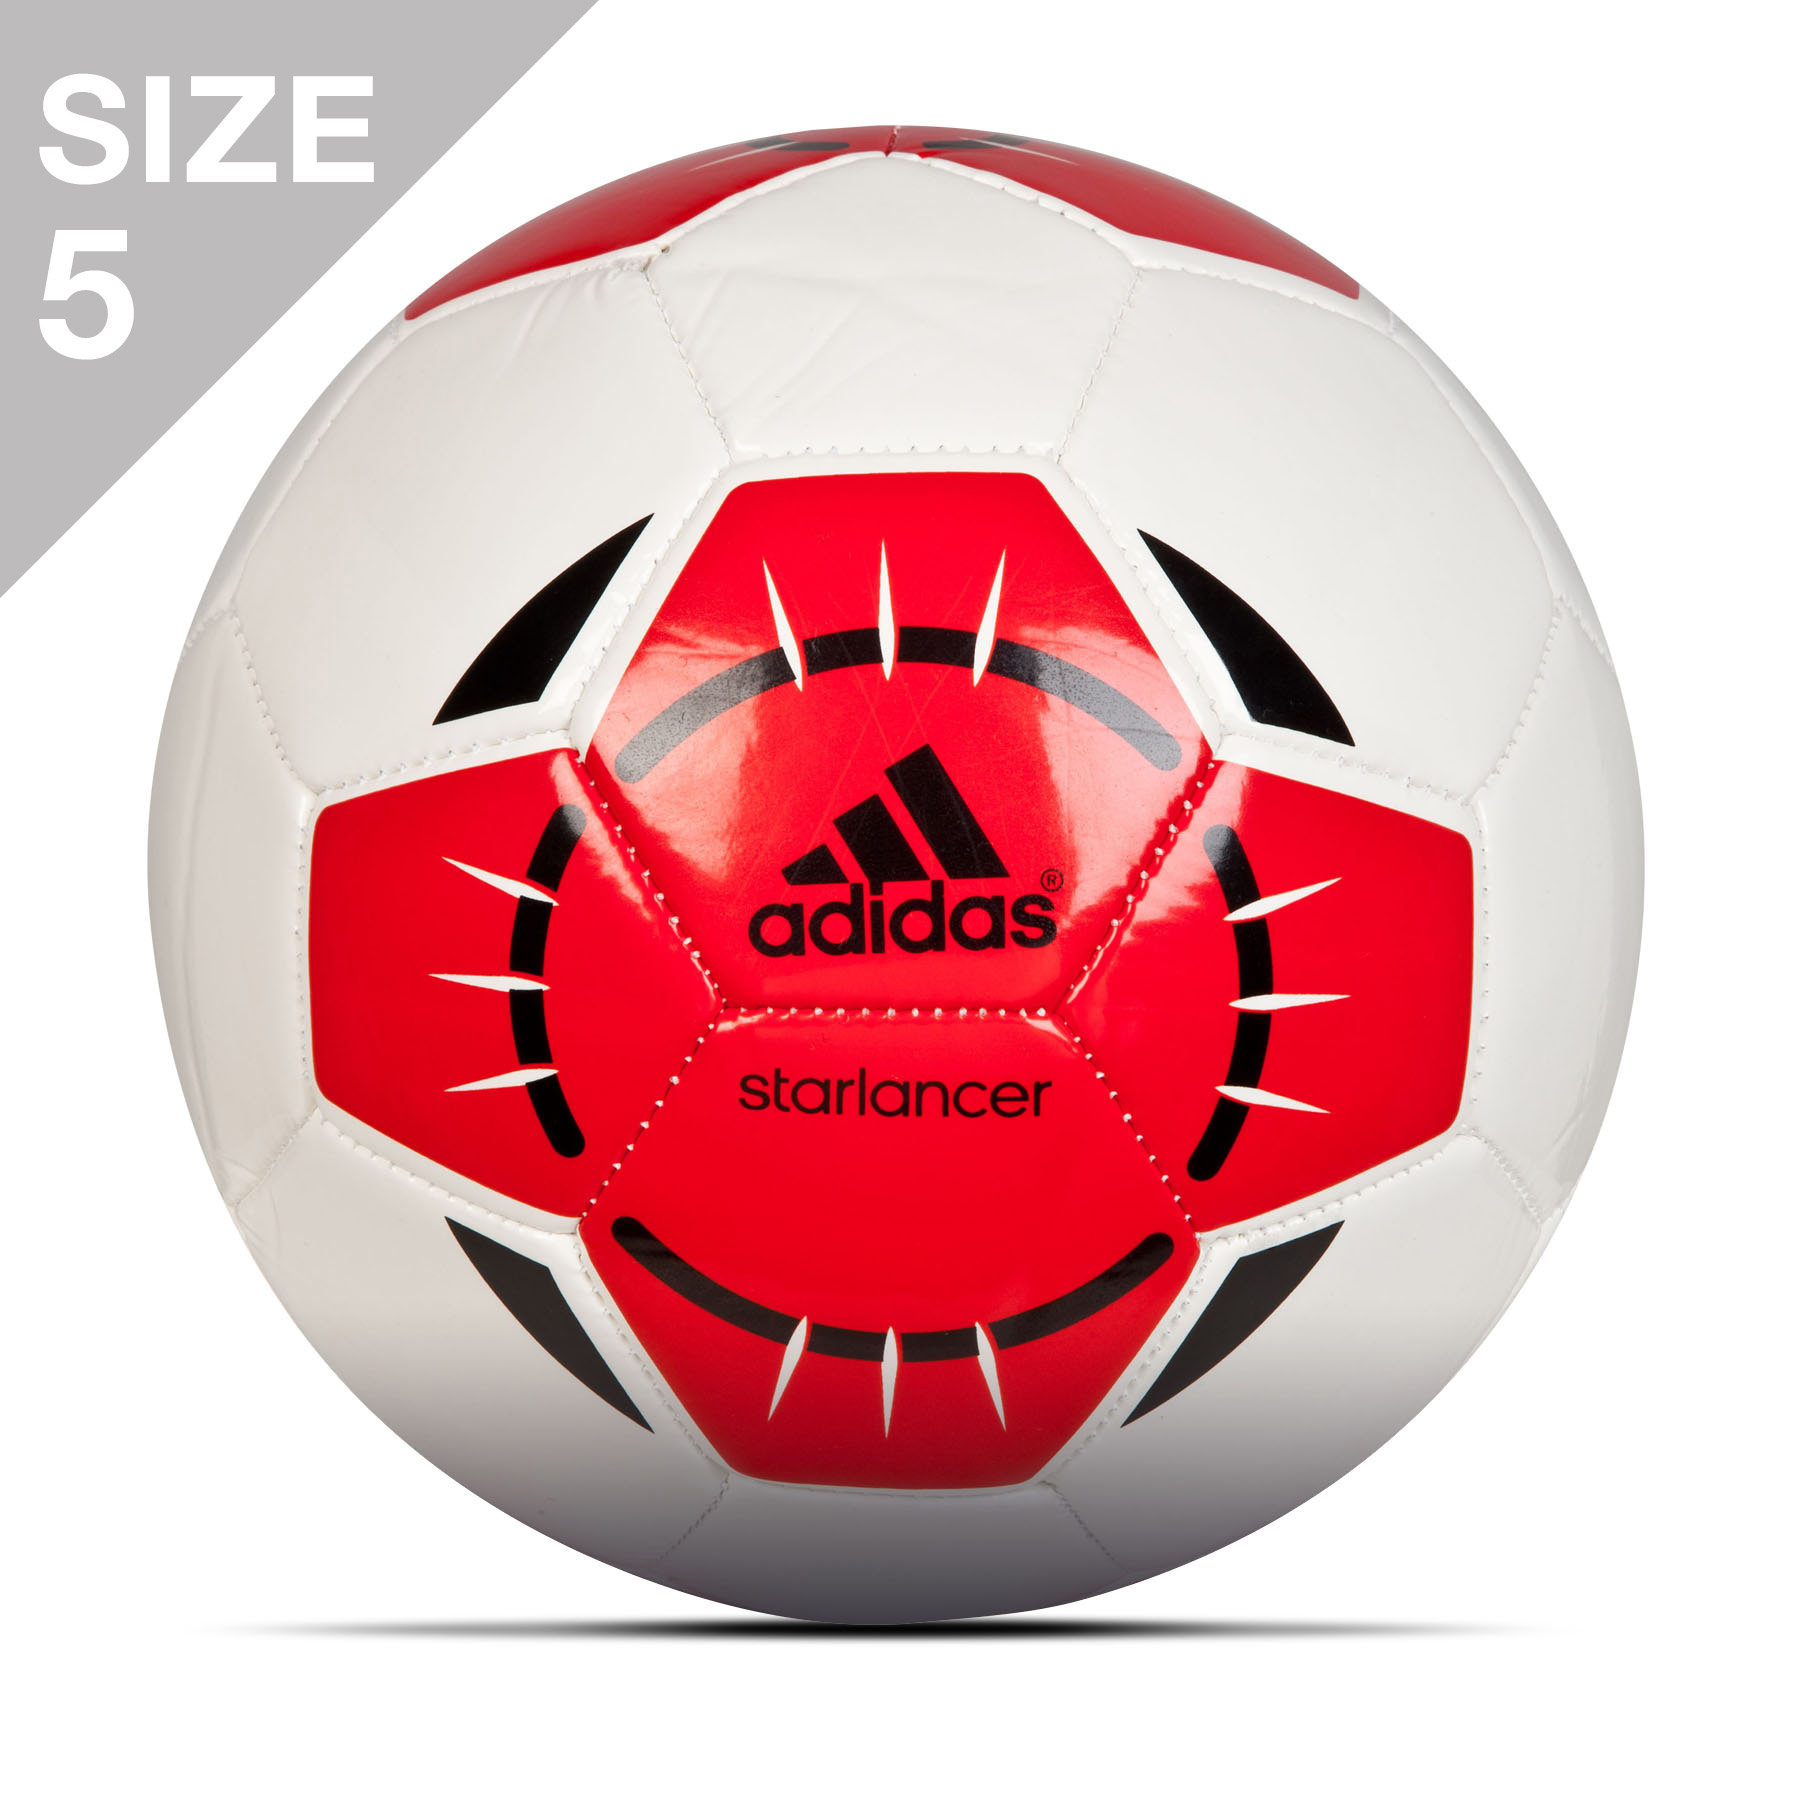 Adidas Starlancer Football - Size 5